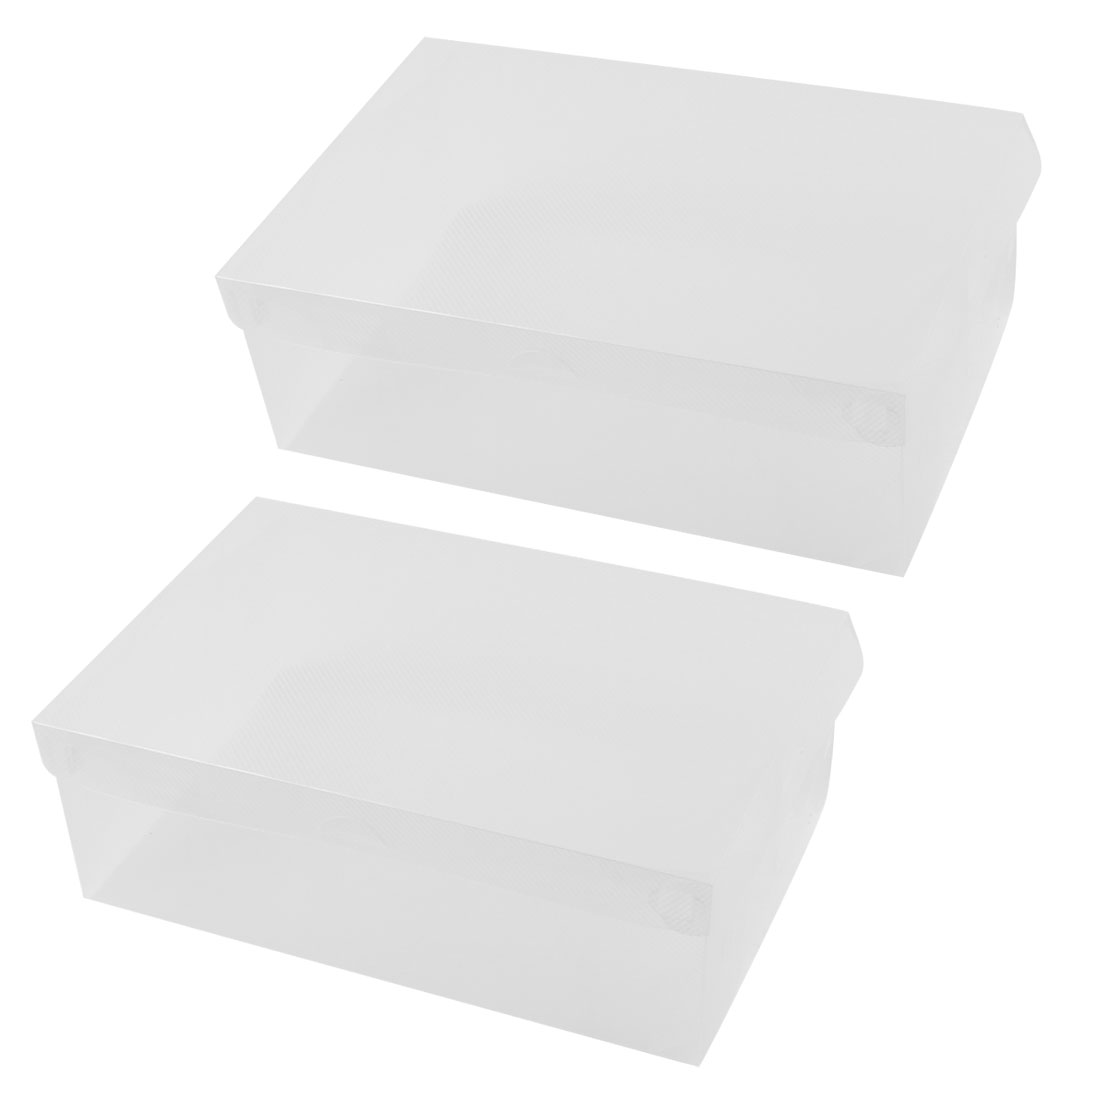 2 Pieces 28 x 18 x 10cm Clear Plastic Women Shoes Boots Storage Boxes Containers